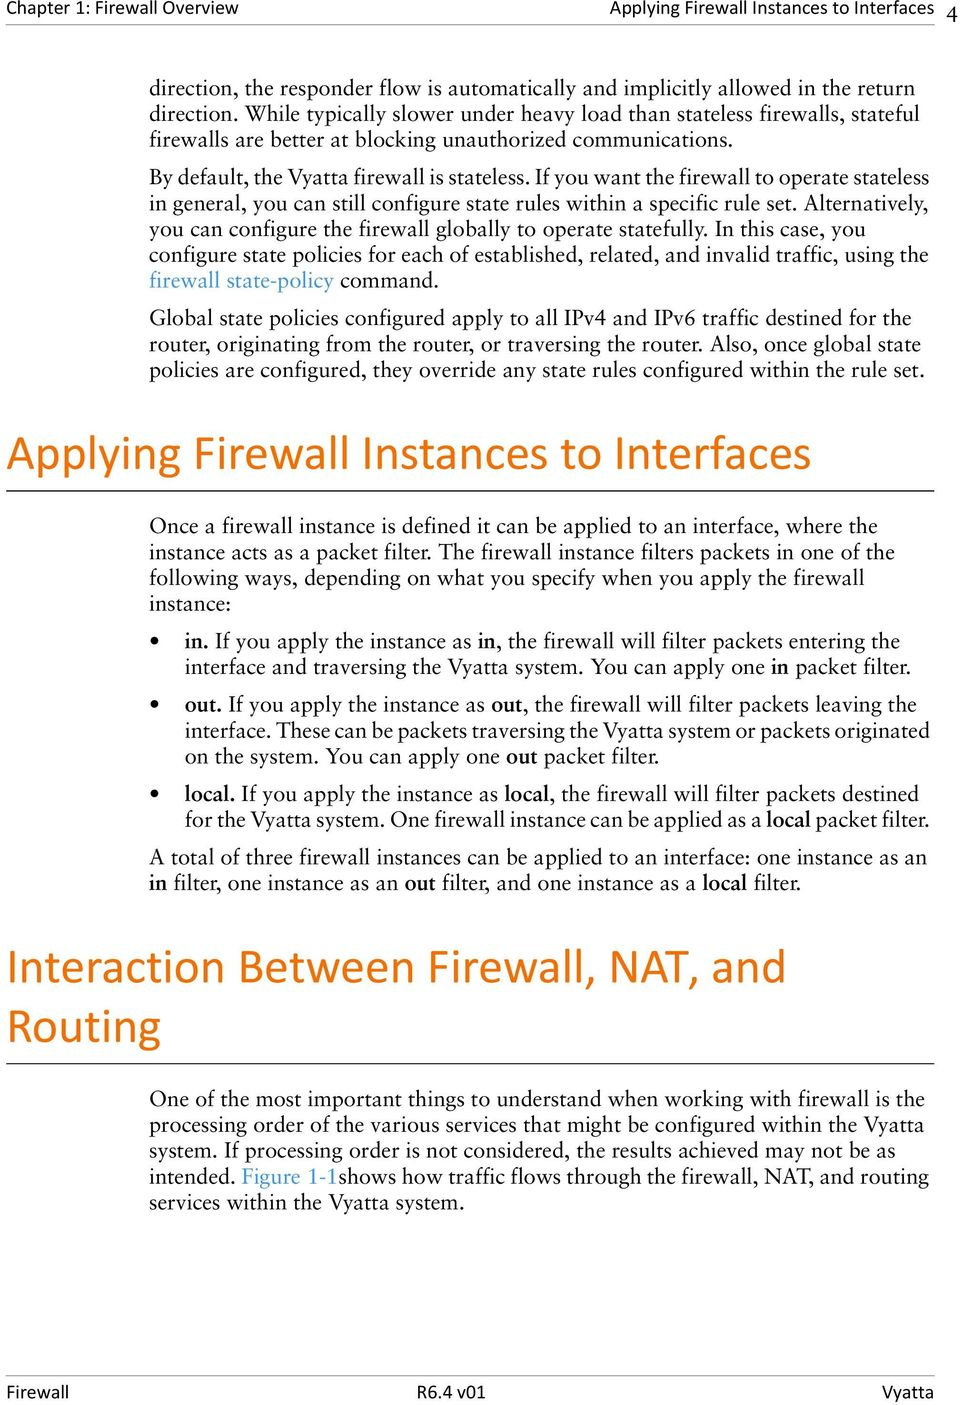 If you want the firewall to operate stateless in general, you can still configure state rules within a specific rule set. Alternatively, you can configure the firewall globally to operate statefully.